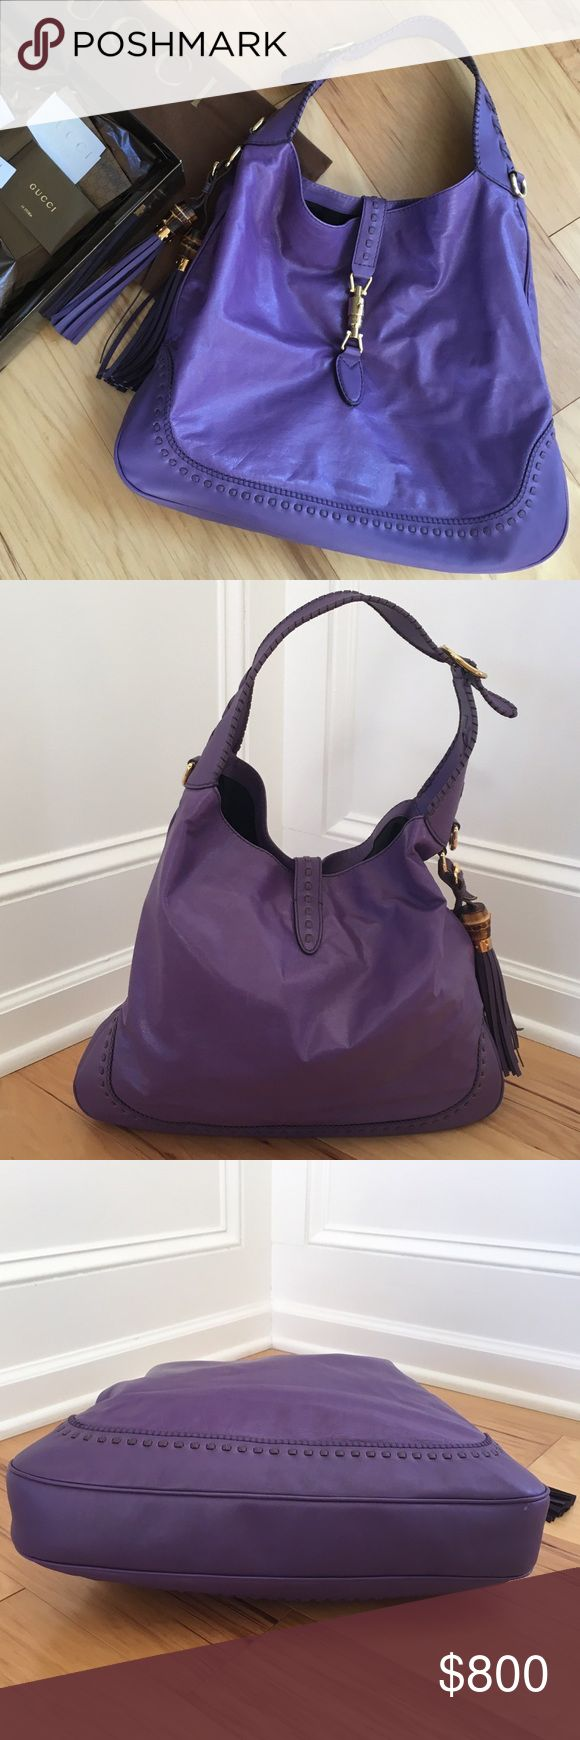 Gucci 'New Jackie' size Large, deep purple leather 100% authentic Gucci 'New Jackie Large' in deep purple leather. Removable shoulder strap. Closes with a lock on the front. Lined in black monogram nylon with a cell phone pocket agains the front and a zipper pocket against the back. Excellent condition. Comes with box, dust bag, cards, receipt and strap. Purchased from Gucci $1981. It's a beautiful large unused bag in my closet  Width : 43cm (16.8in) Height : 34cm (13.3in) Depth : 6cm…